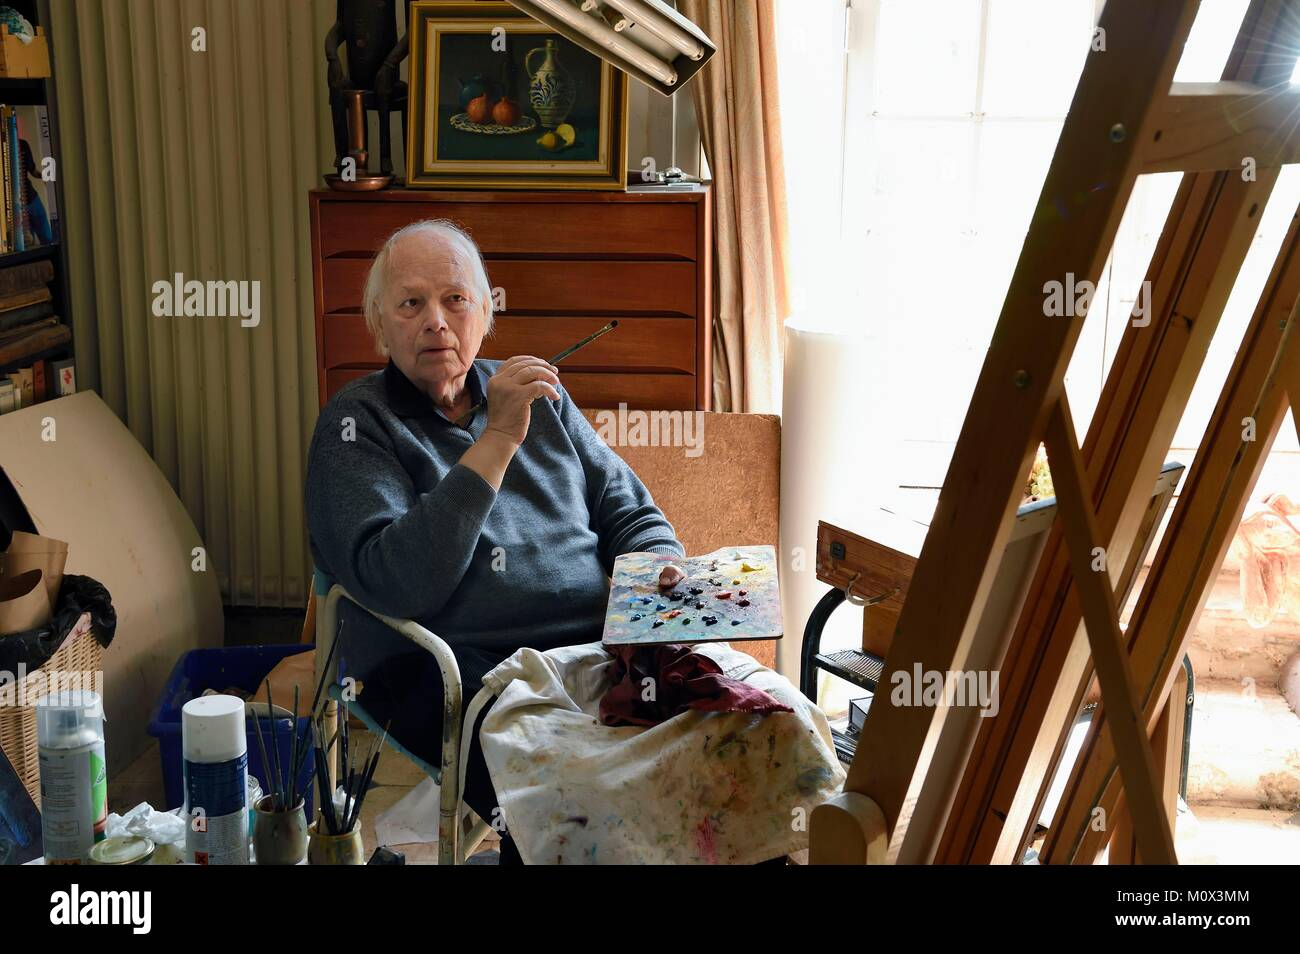 France,Yvelines,Montchauvet,in the studio of the painter Raoul Mouillard - Stock Image